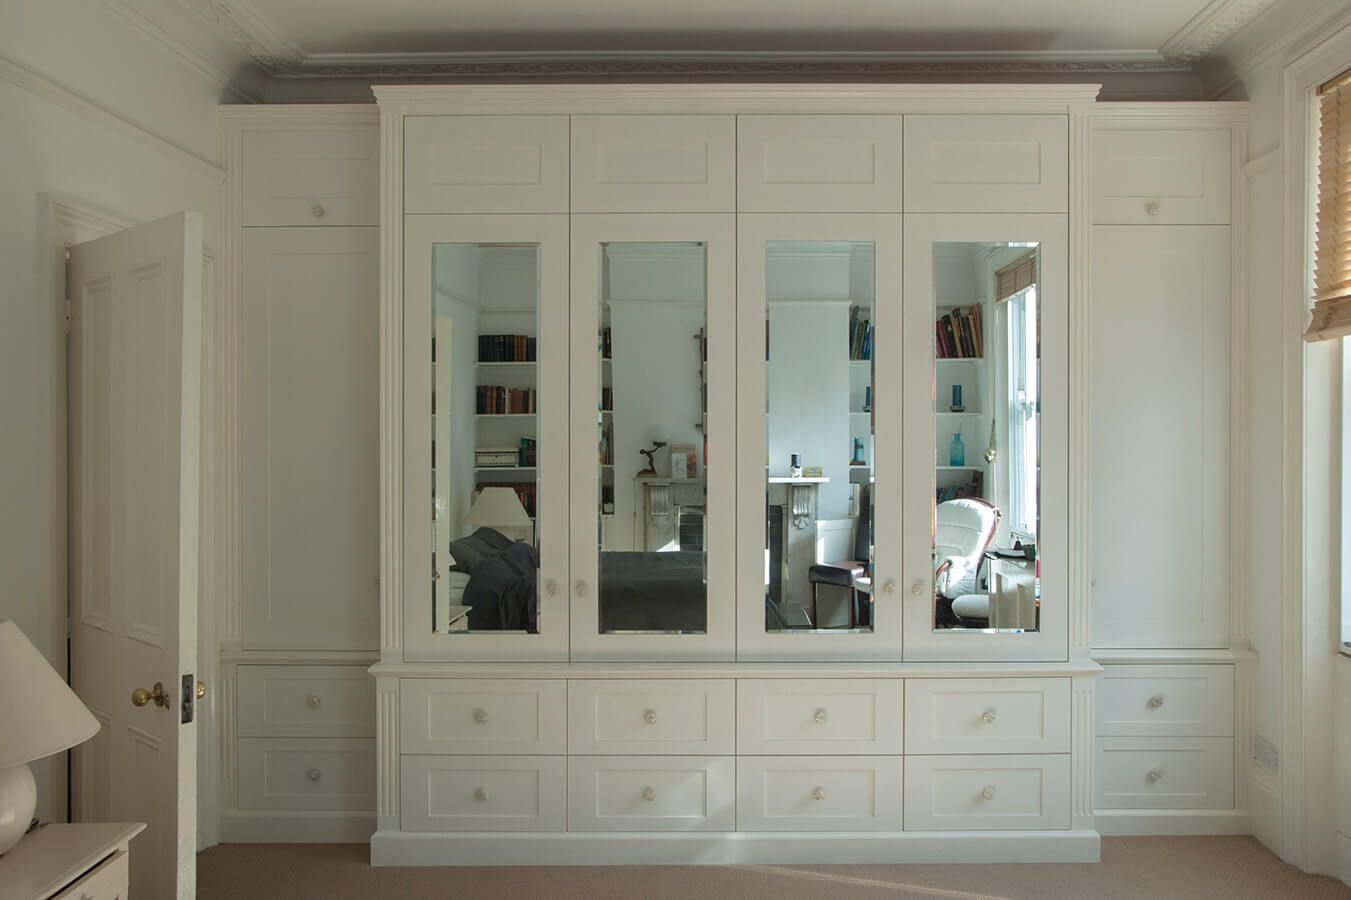 How To Customize Ikea Pax Google Search Closets Pinterest Ikea Pax Drawers And Bedrooms